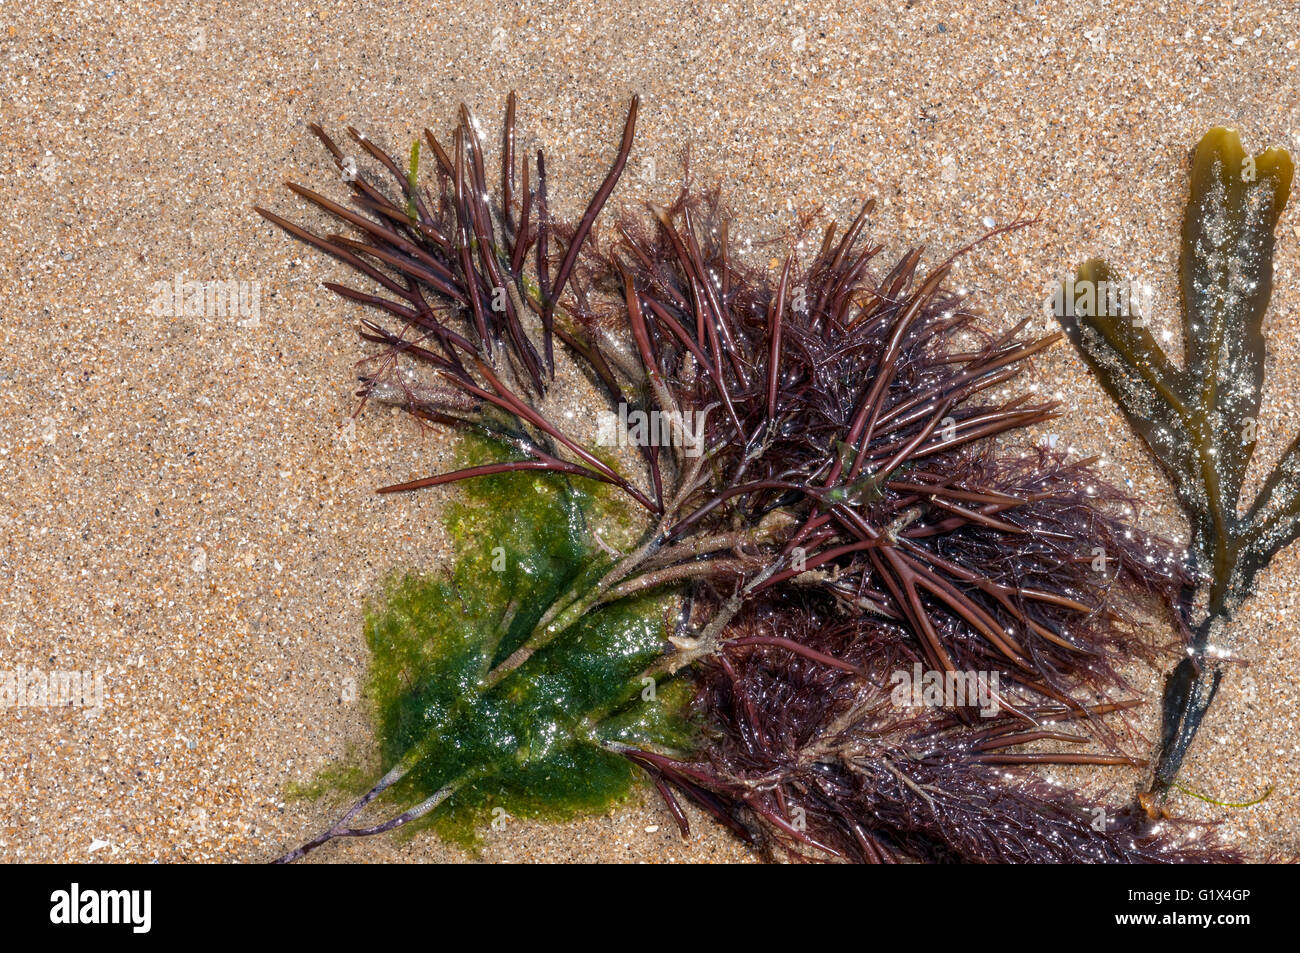 The red seaweed Furcellaria lumbricalis washed up on a beach with some other unidentified seaweeds - Stock Image